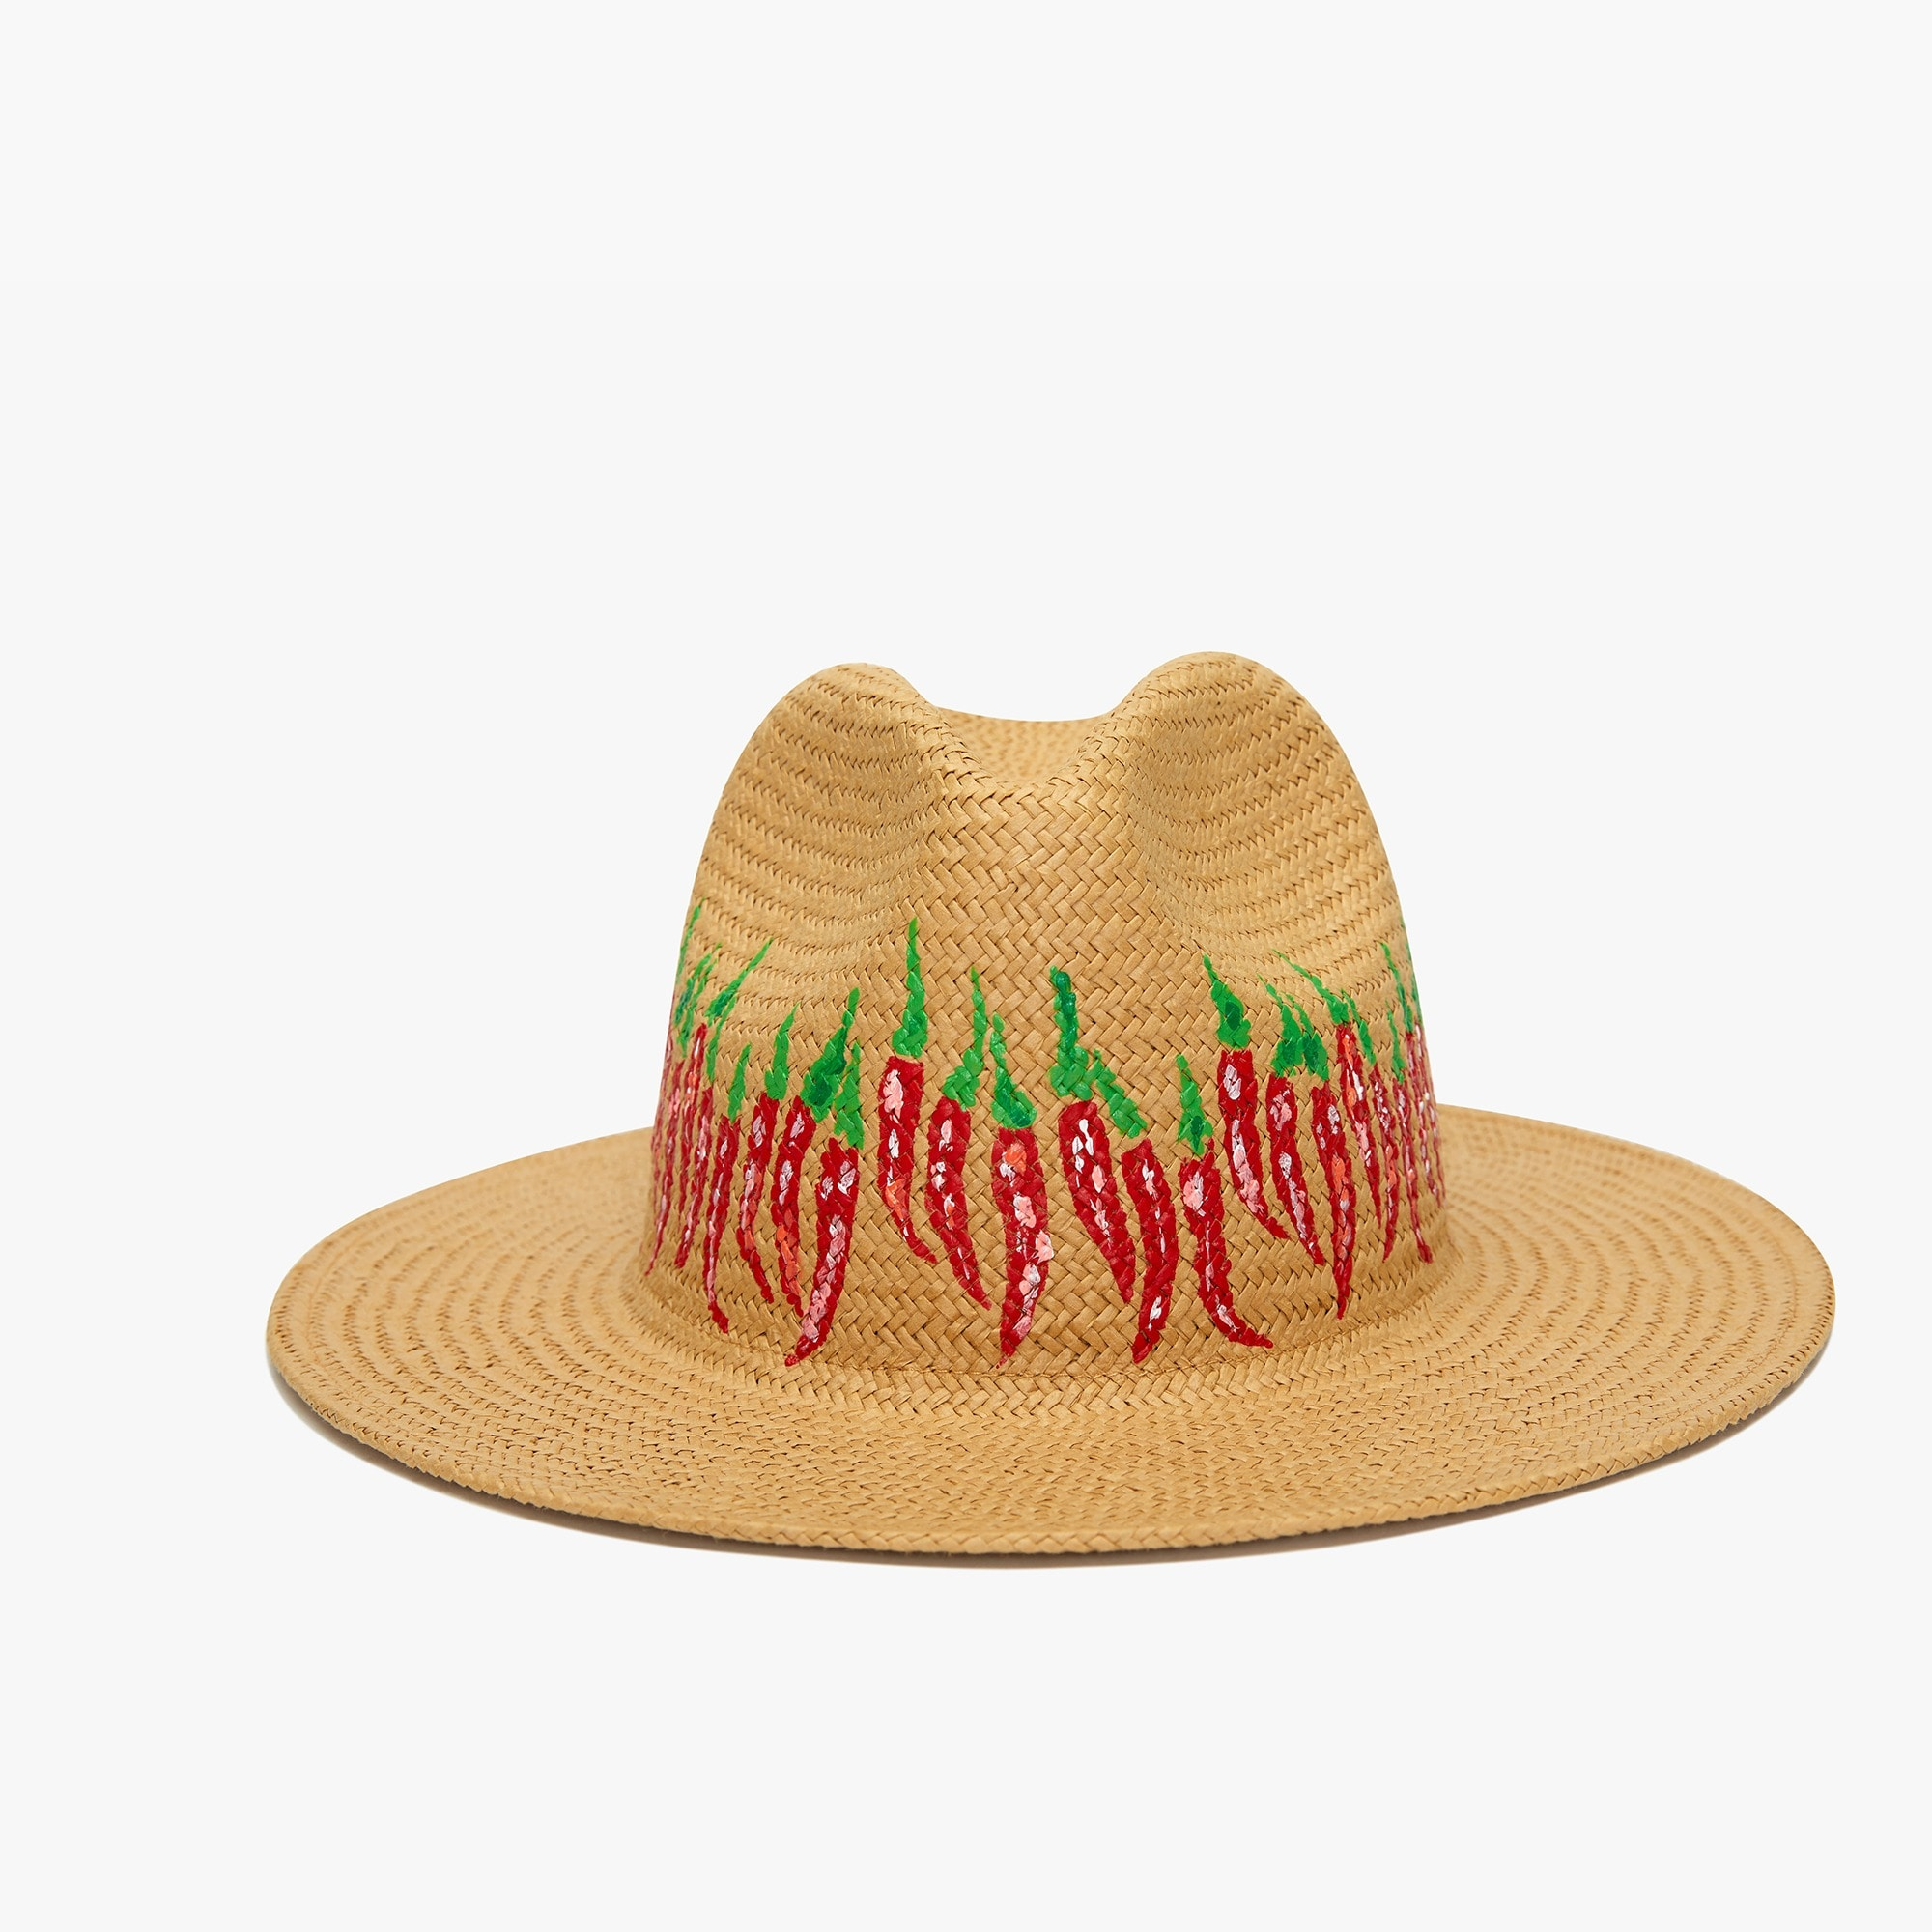 womens Onia Rosa chili Panama hat